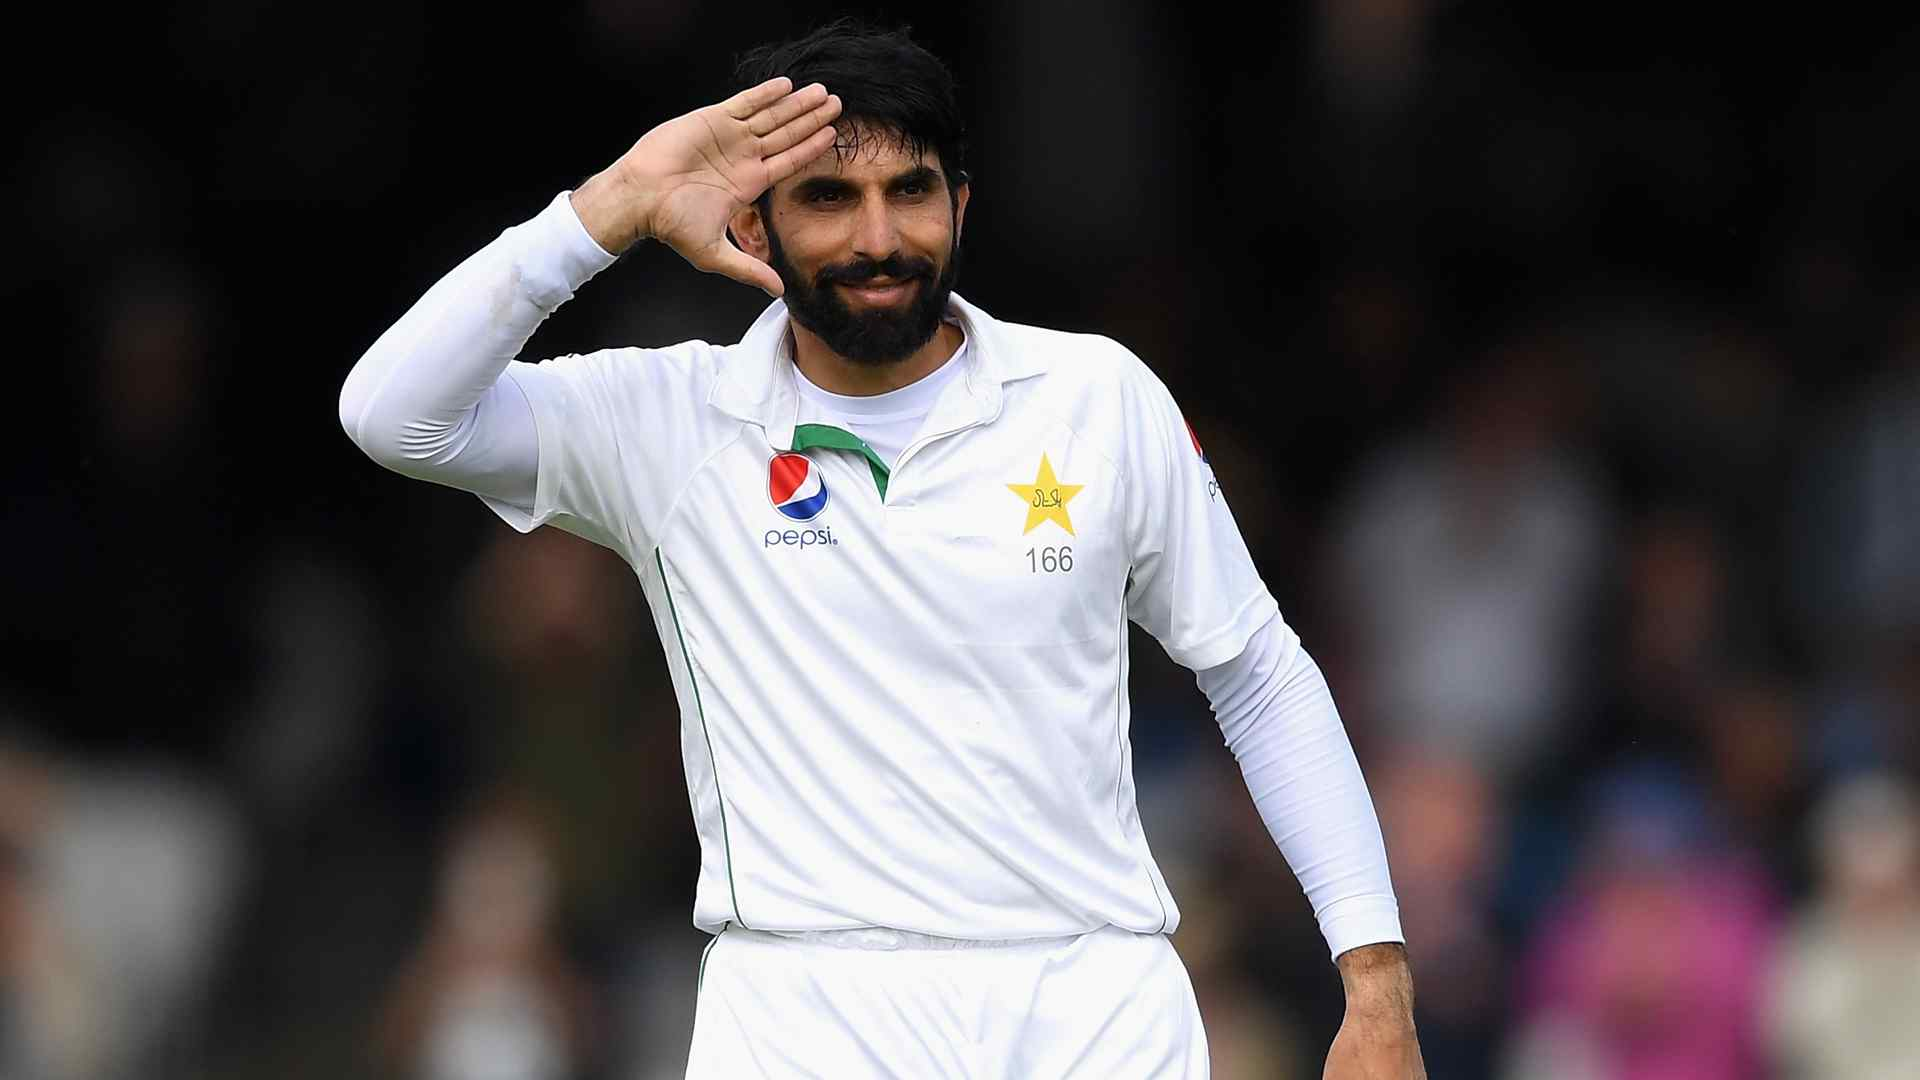 Records Held by Misbah ul Haq